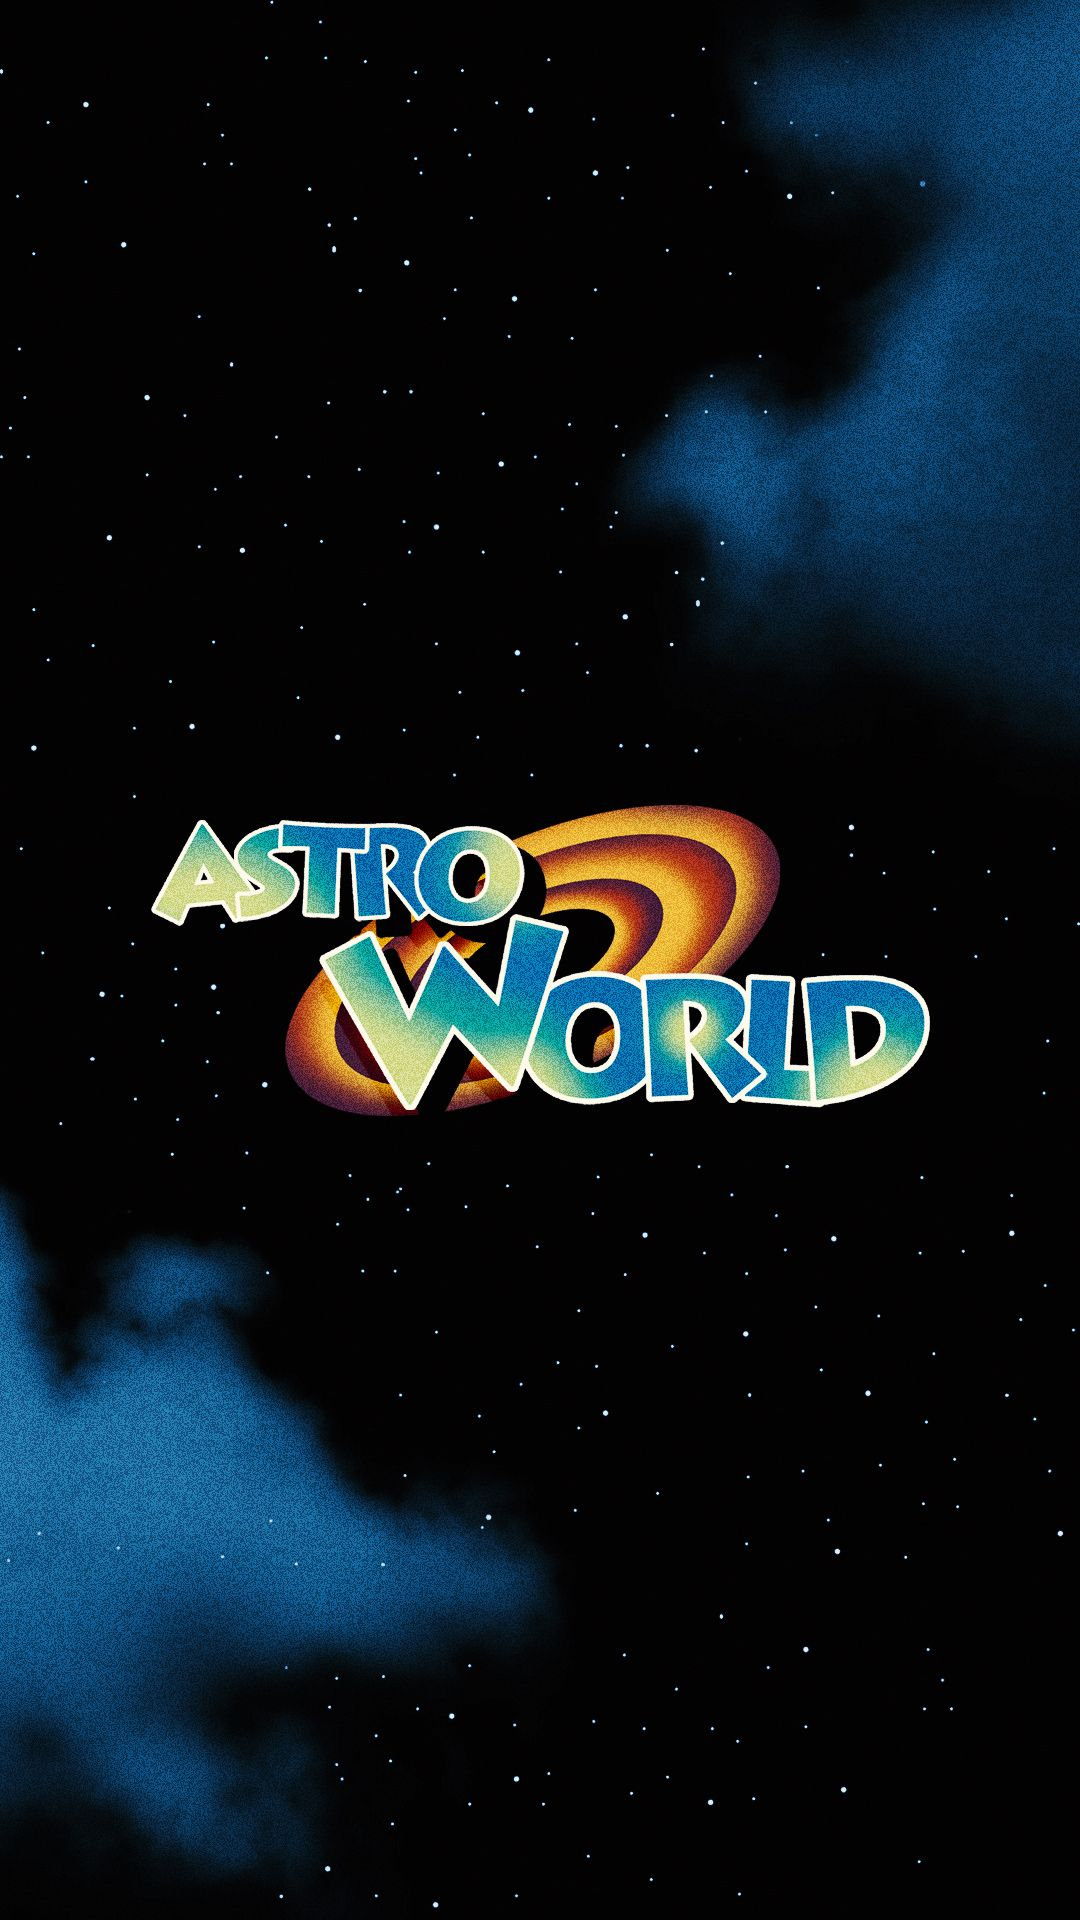 Astroworld Wallpapers - Top Free Astroworld Backgrounds ...